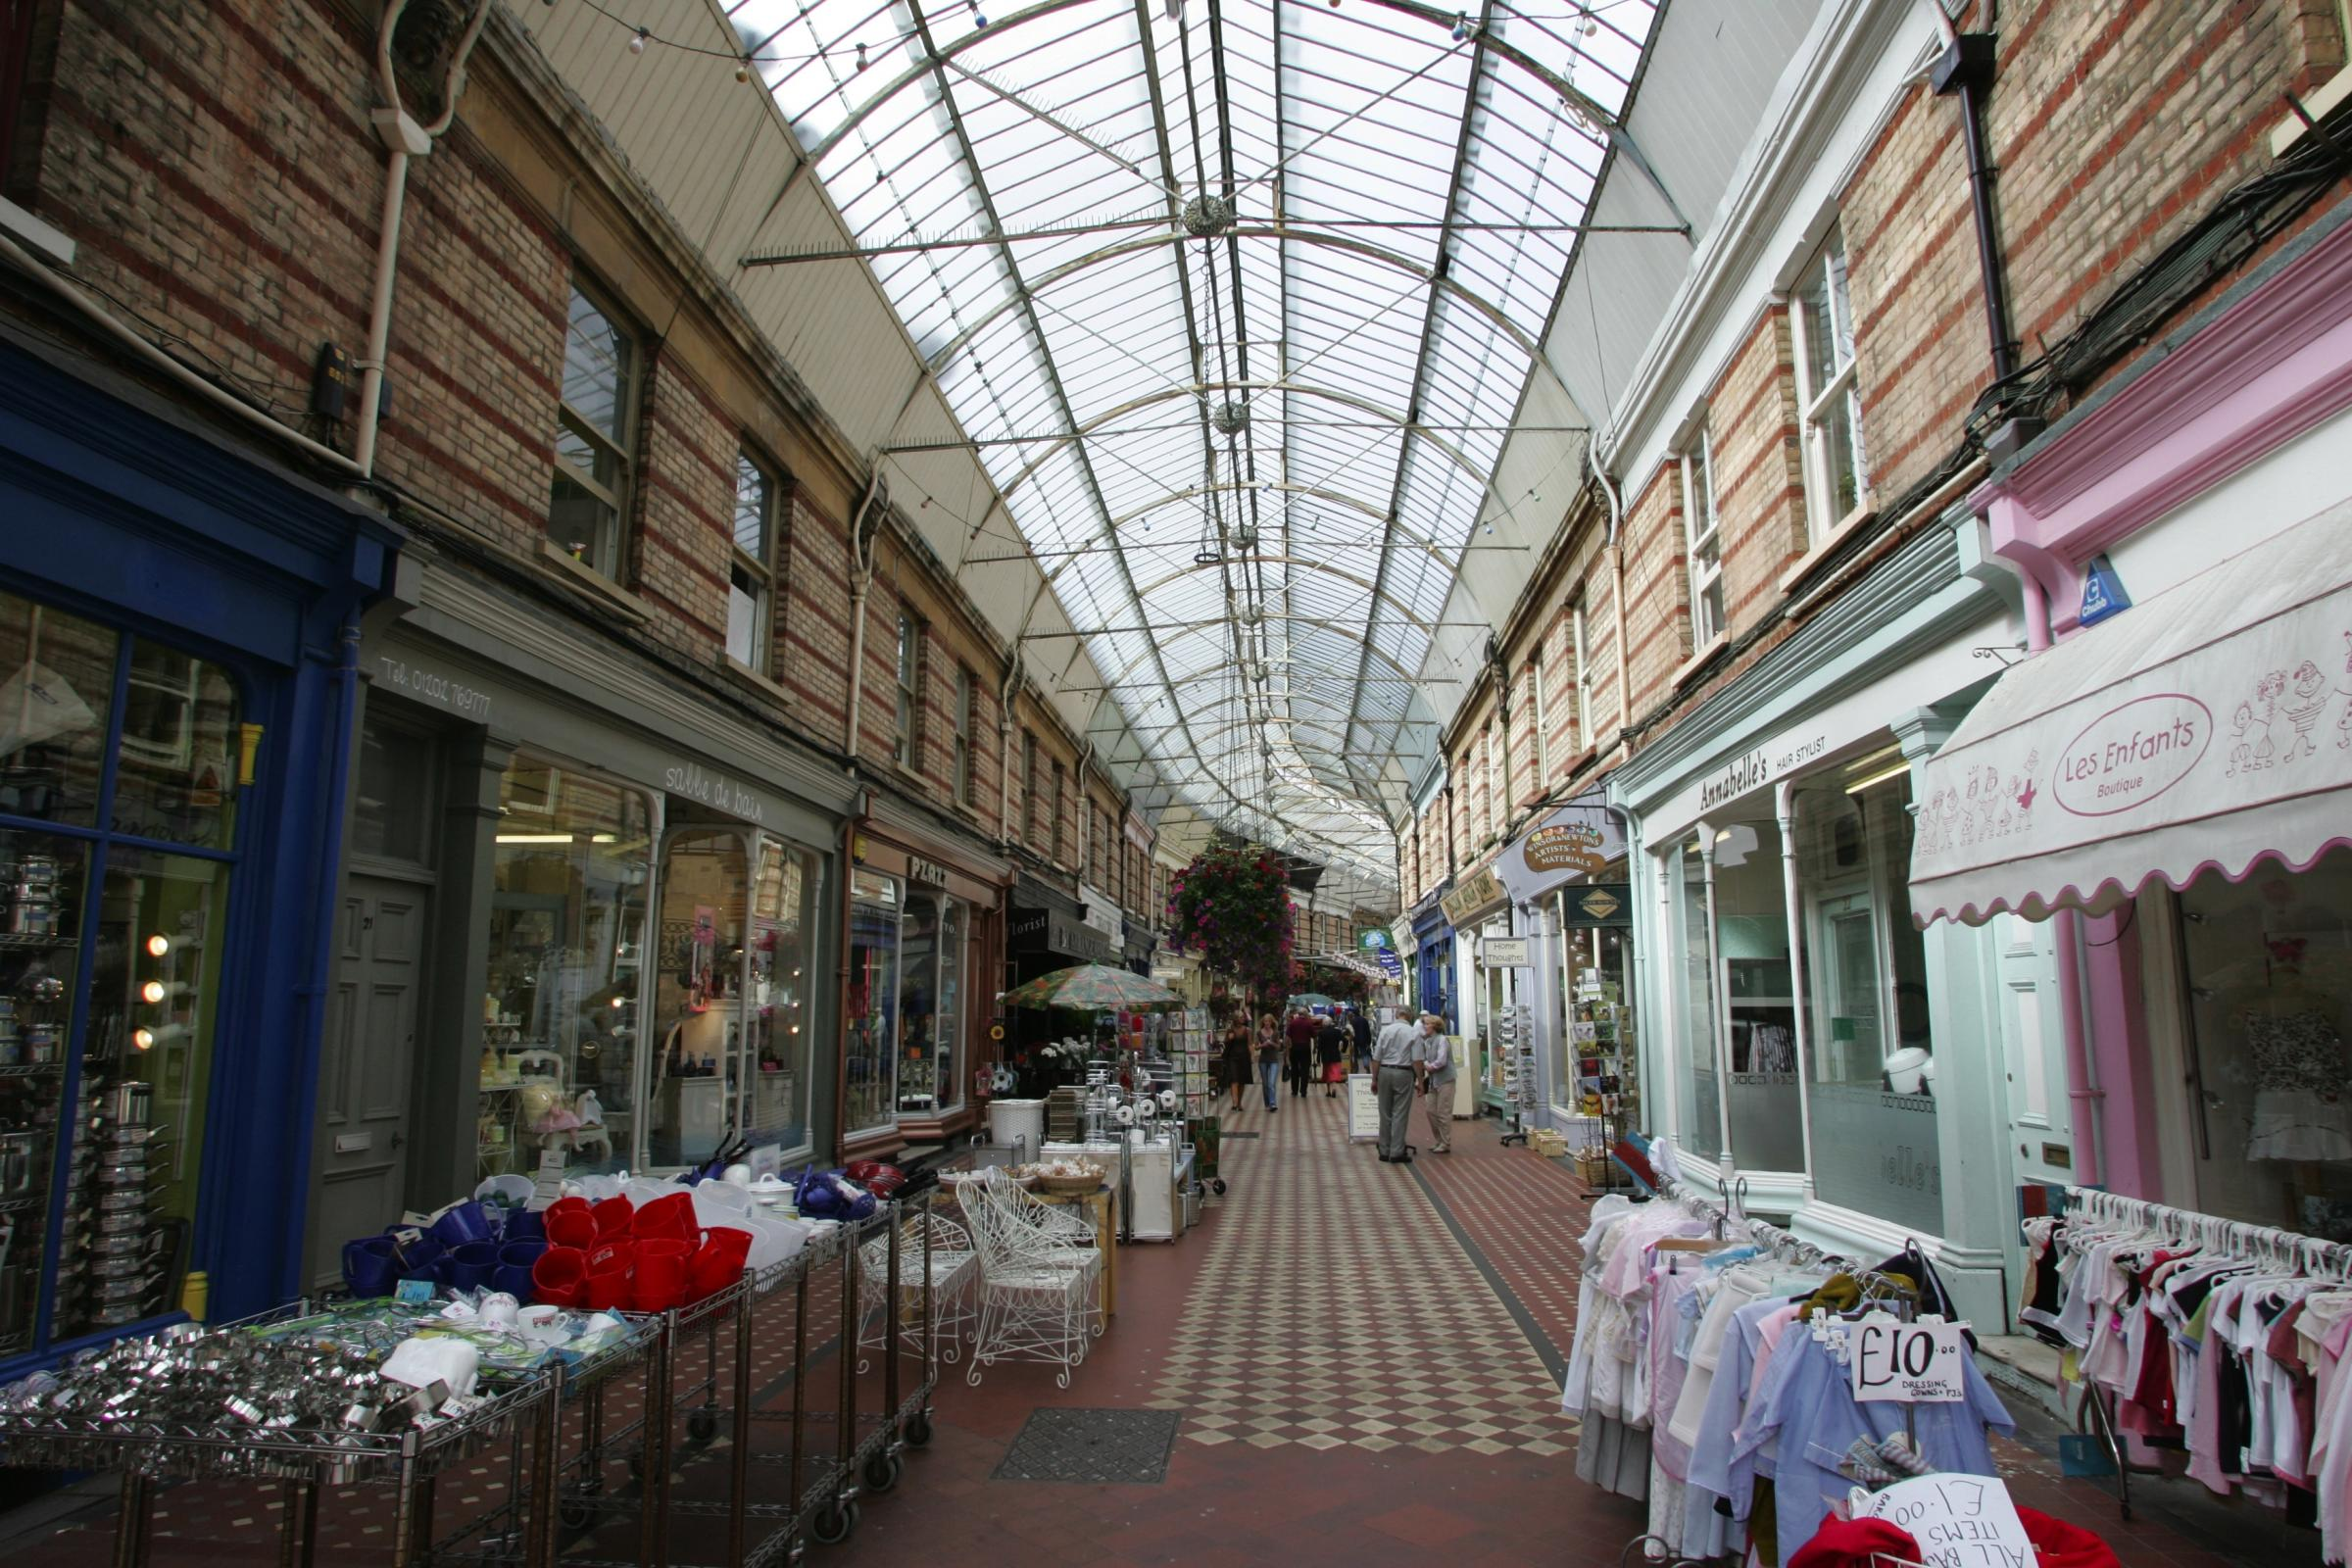 Small businesses in Westbourne Arcade could be among those to benefit from business rates relief